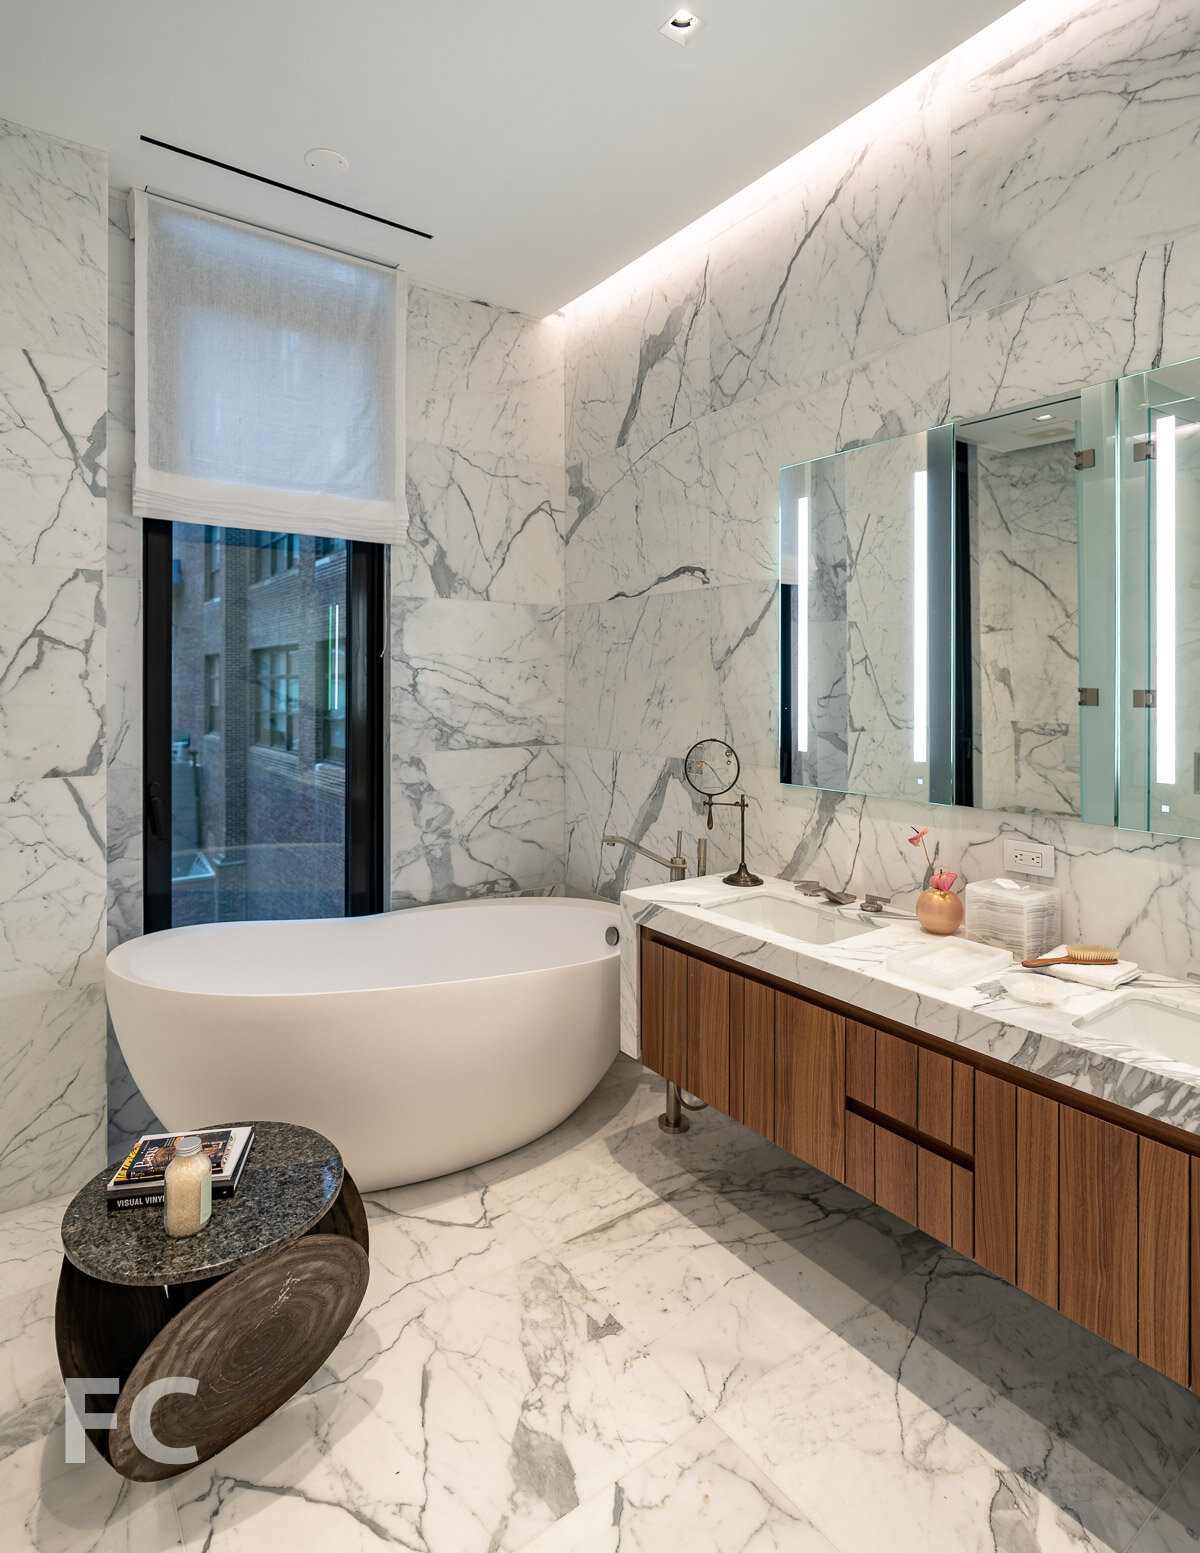 Master bath in the model home at The Residences.